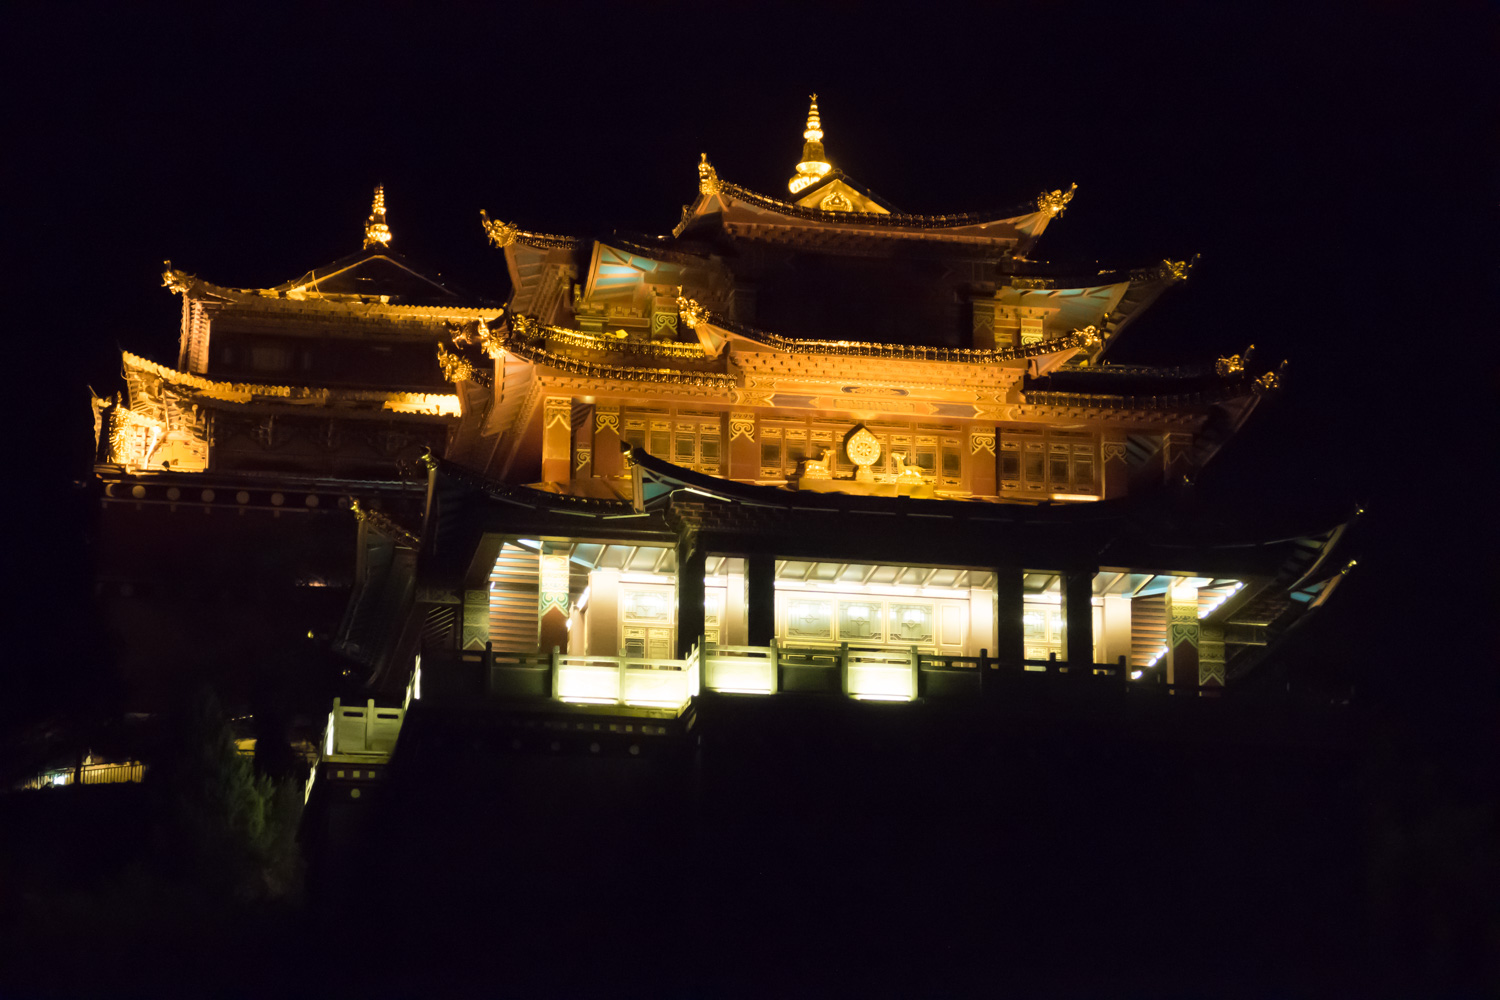 The temple in Shangri-La at night